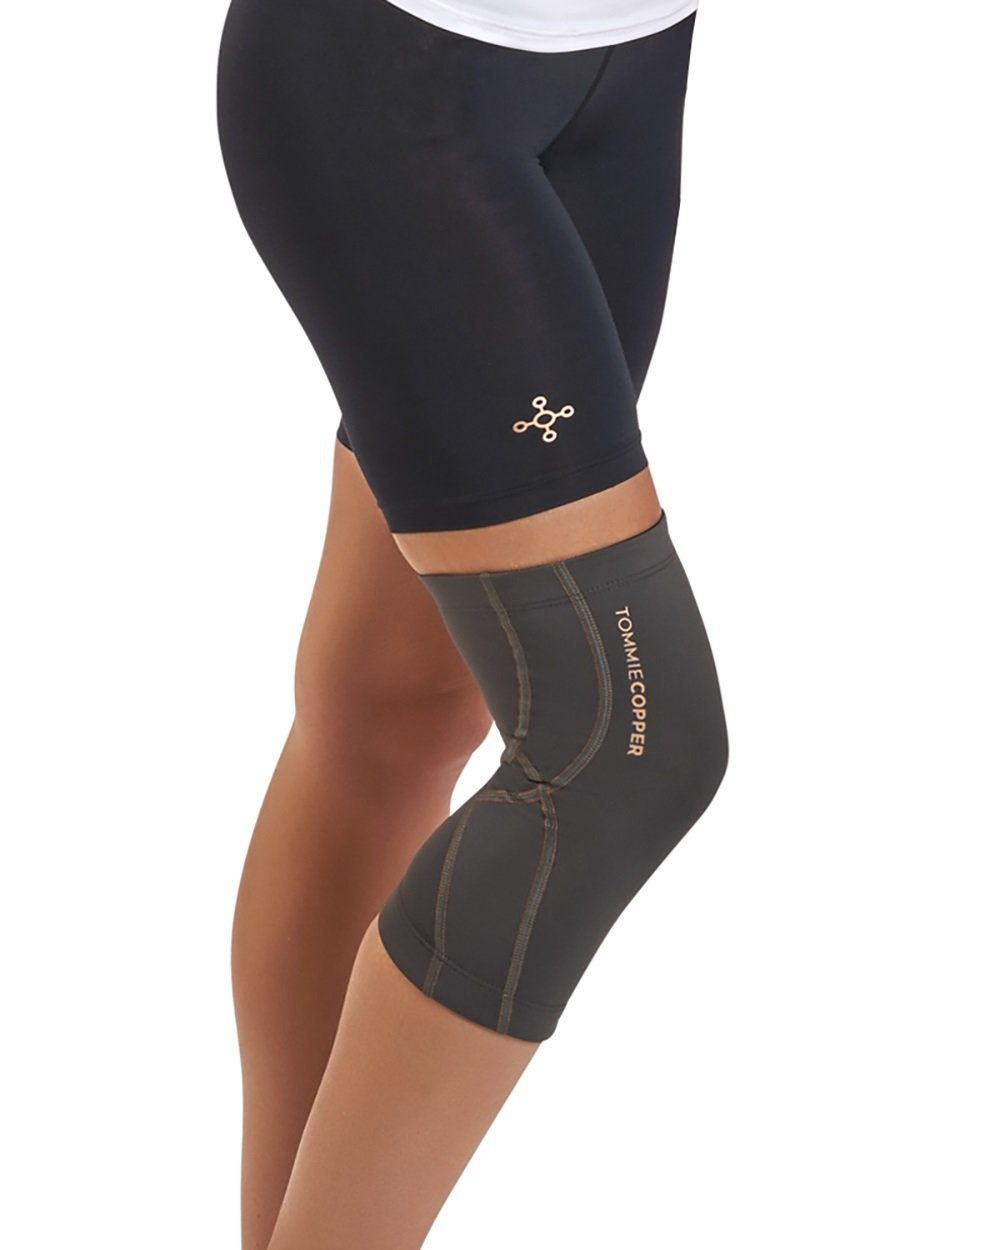 Tommie Copper Women's Performance Knee Sleeves 2.0, Small, Slate Grey